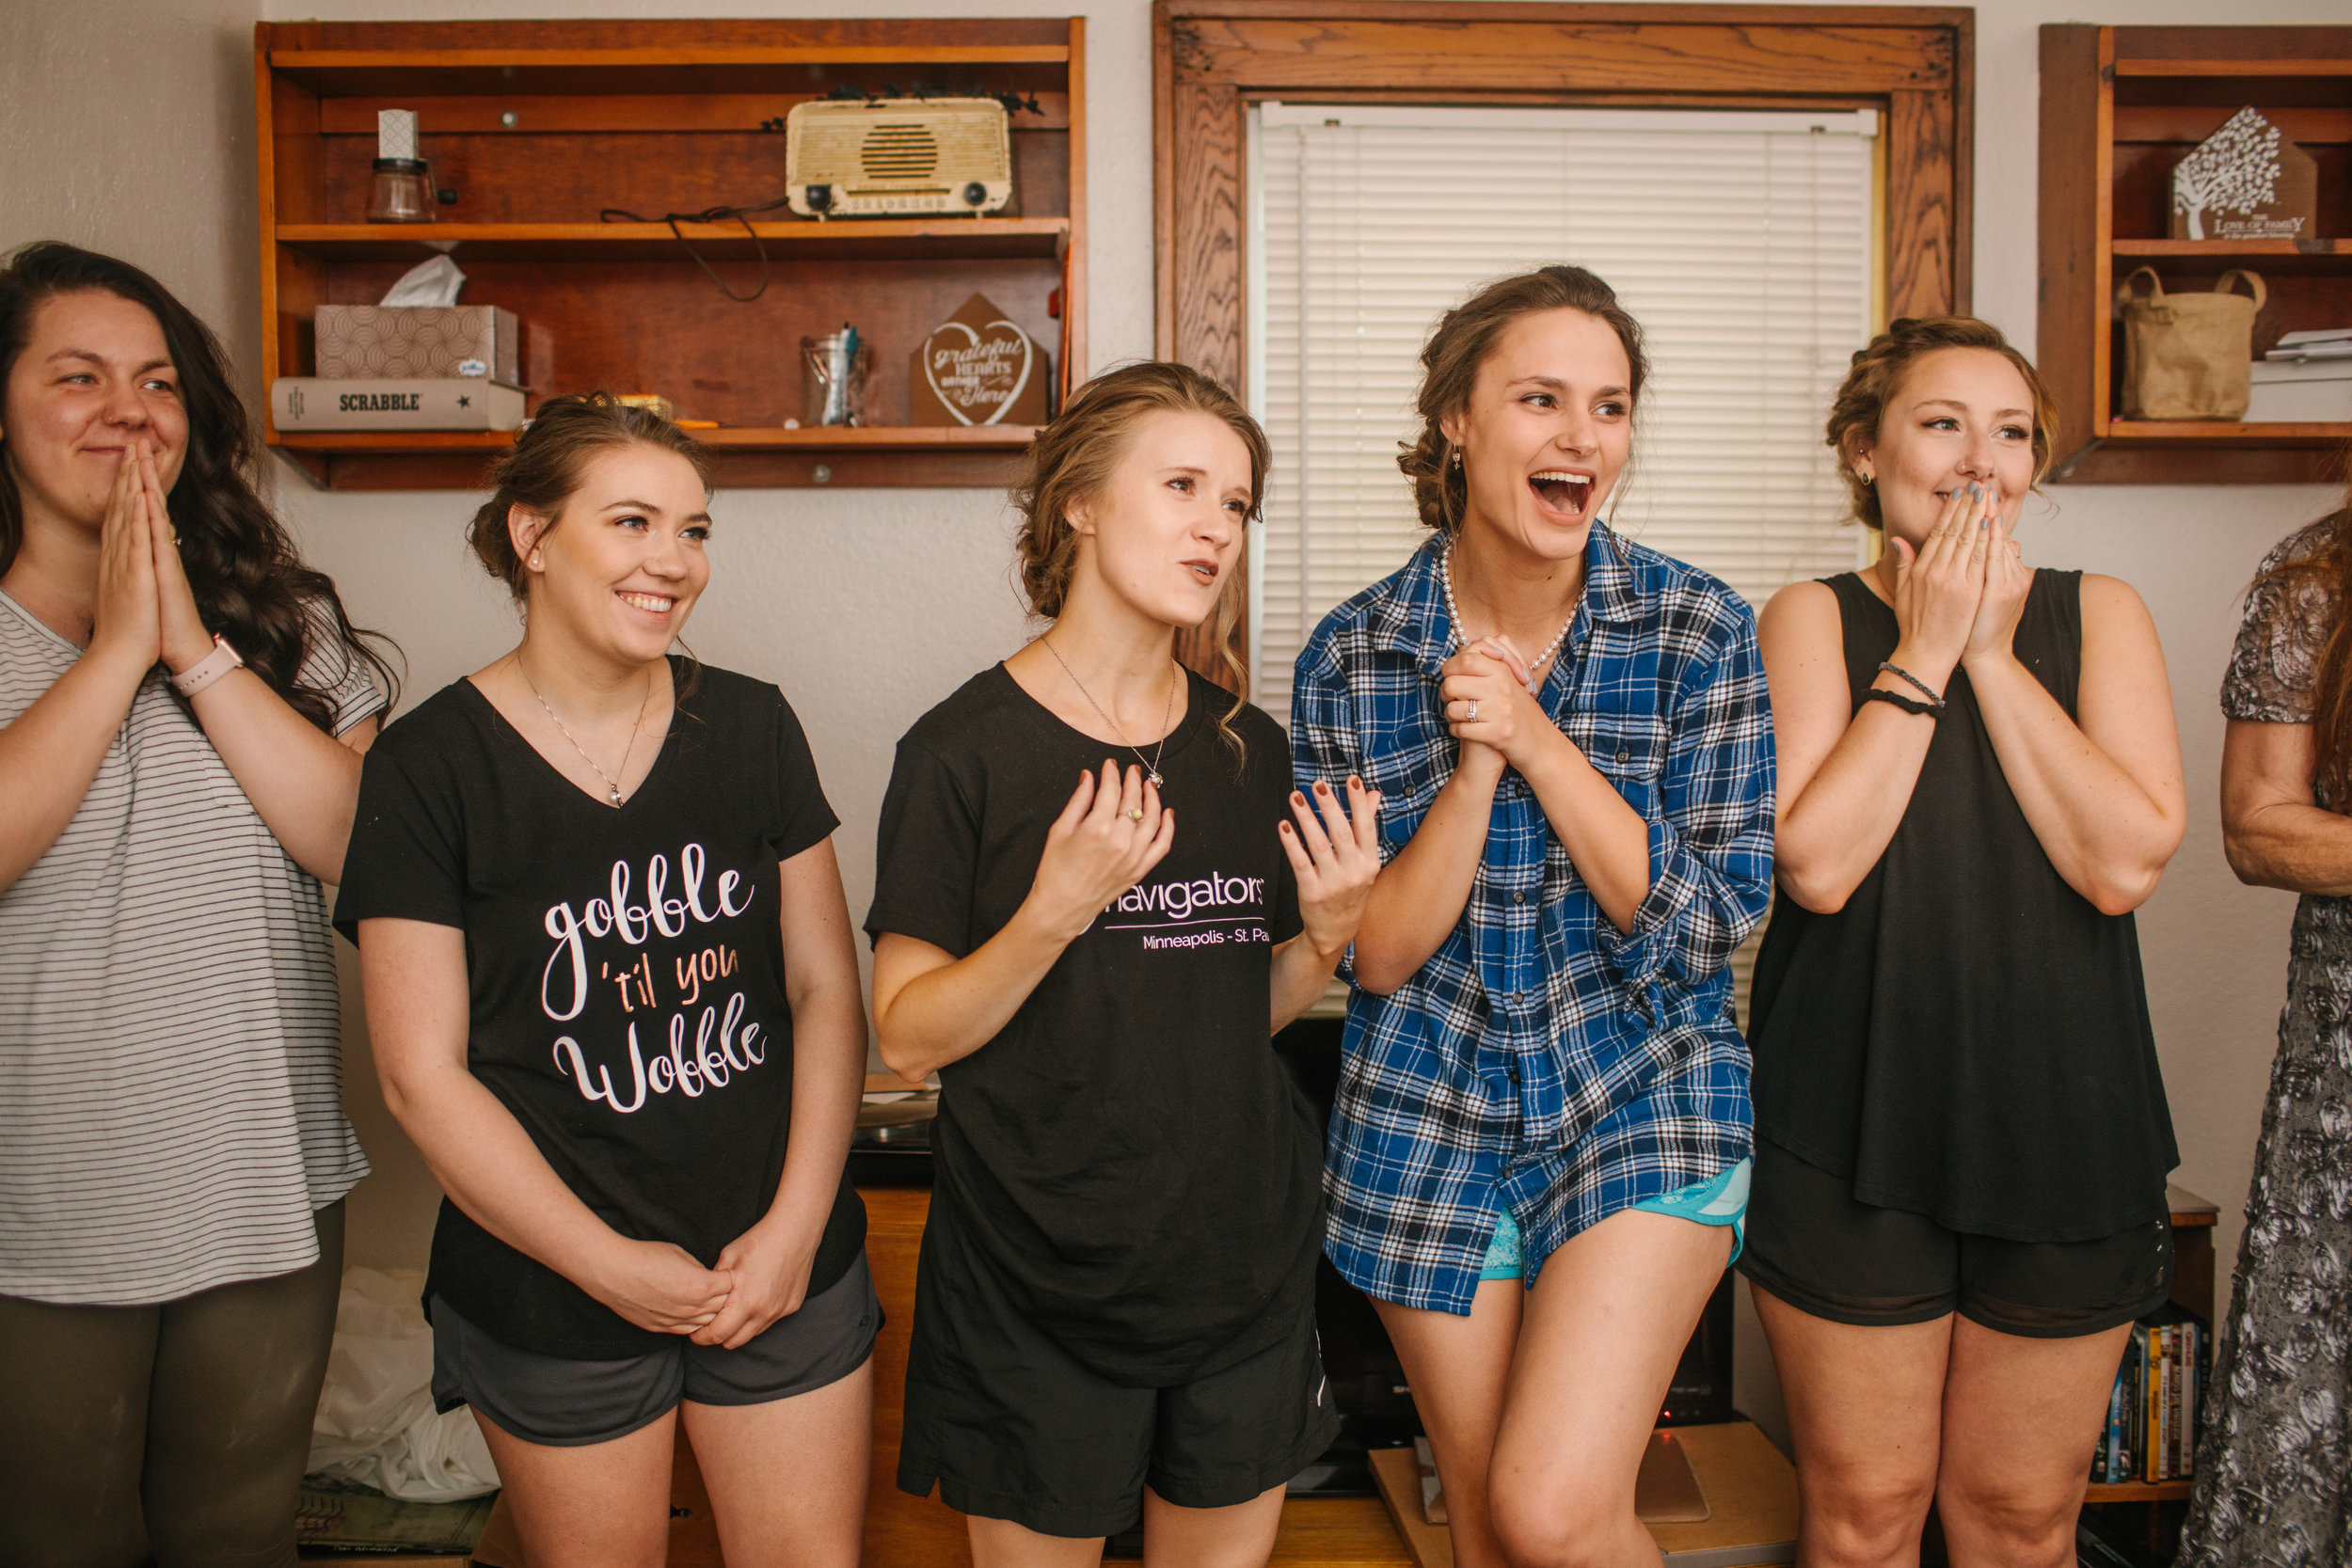 bridesmaids react to seeing friend bride . morganne for the first time des moines iowa